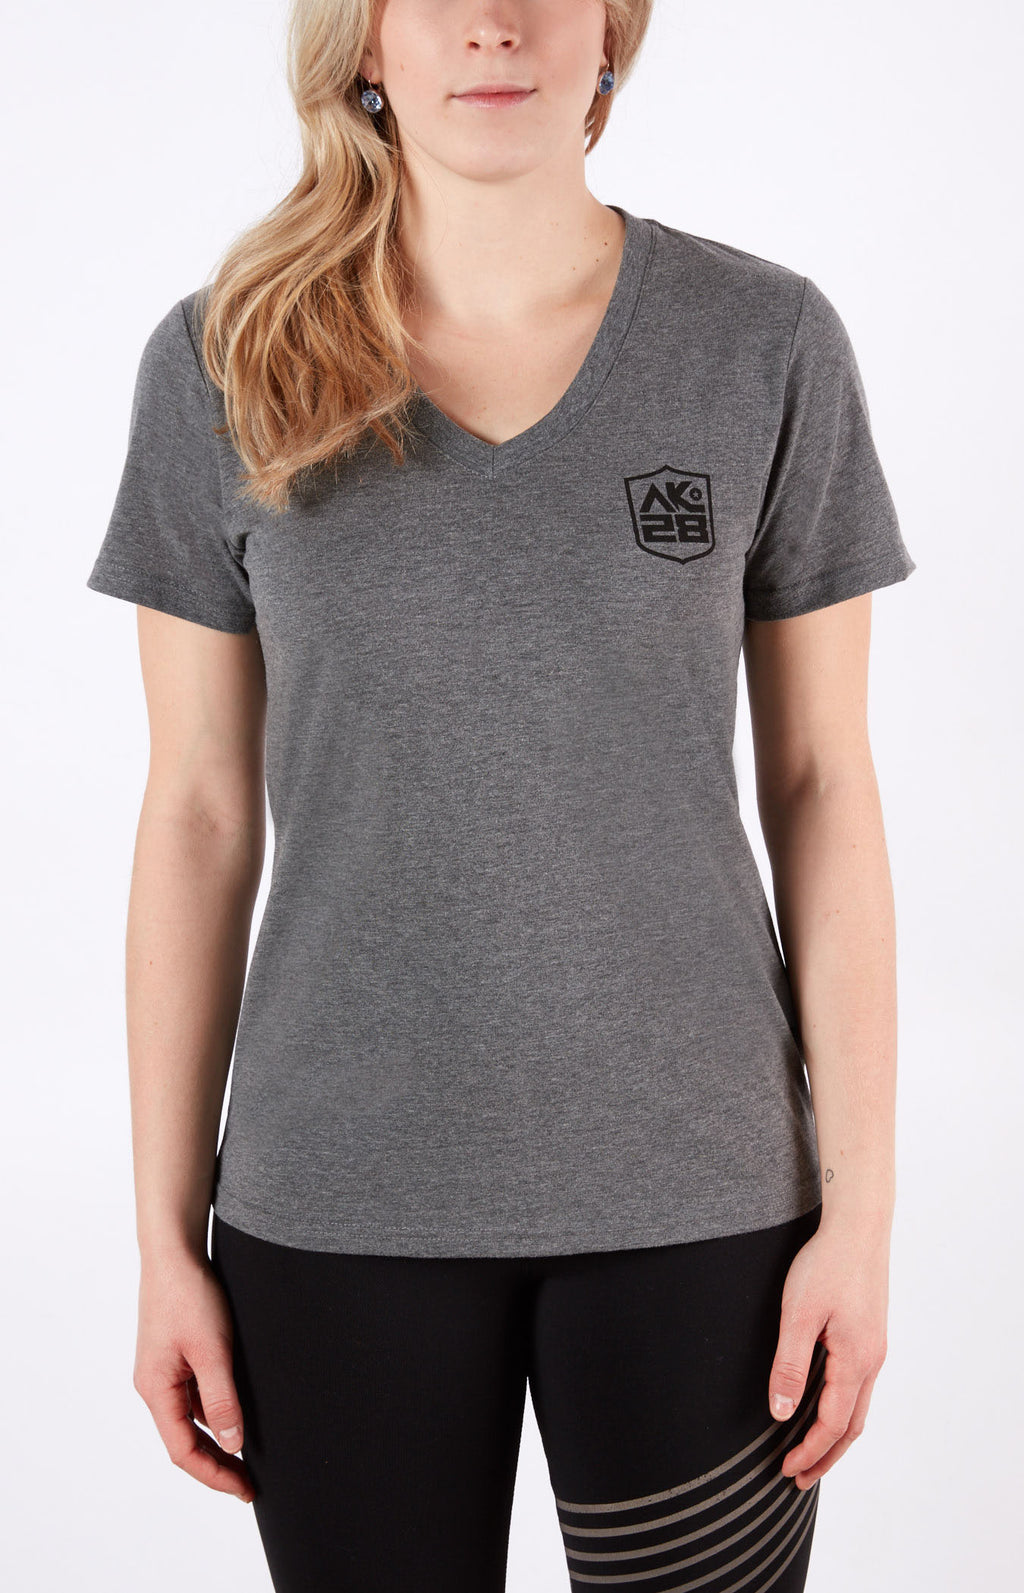 AK28 Grey V-Neck